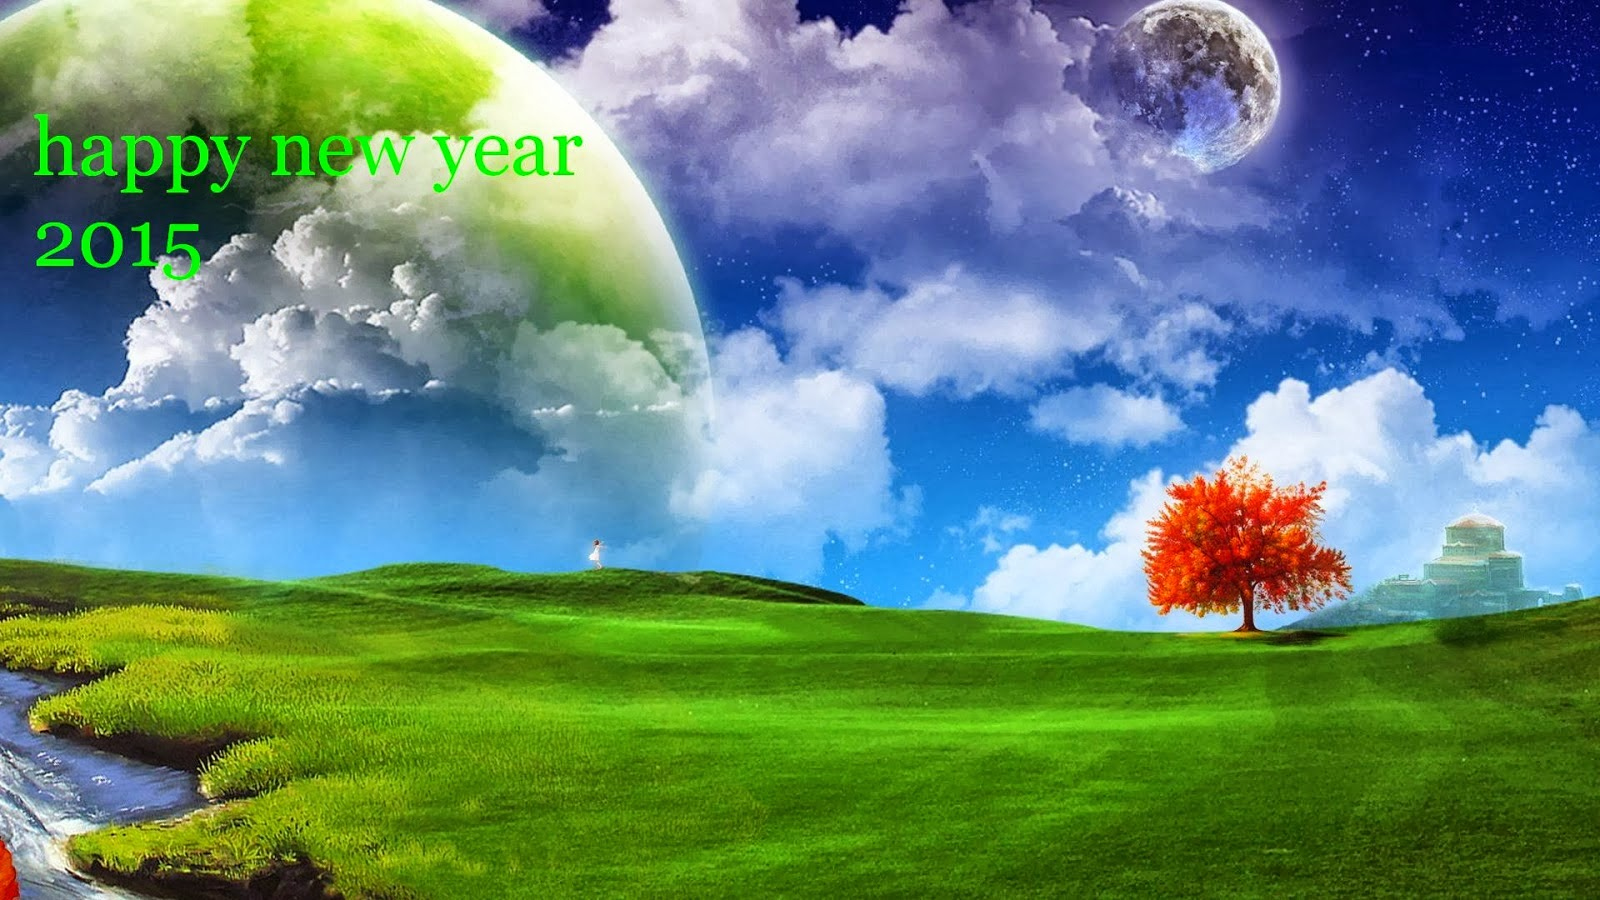 Happy New Year 2015 Wallpaper Free Downloading